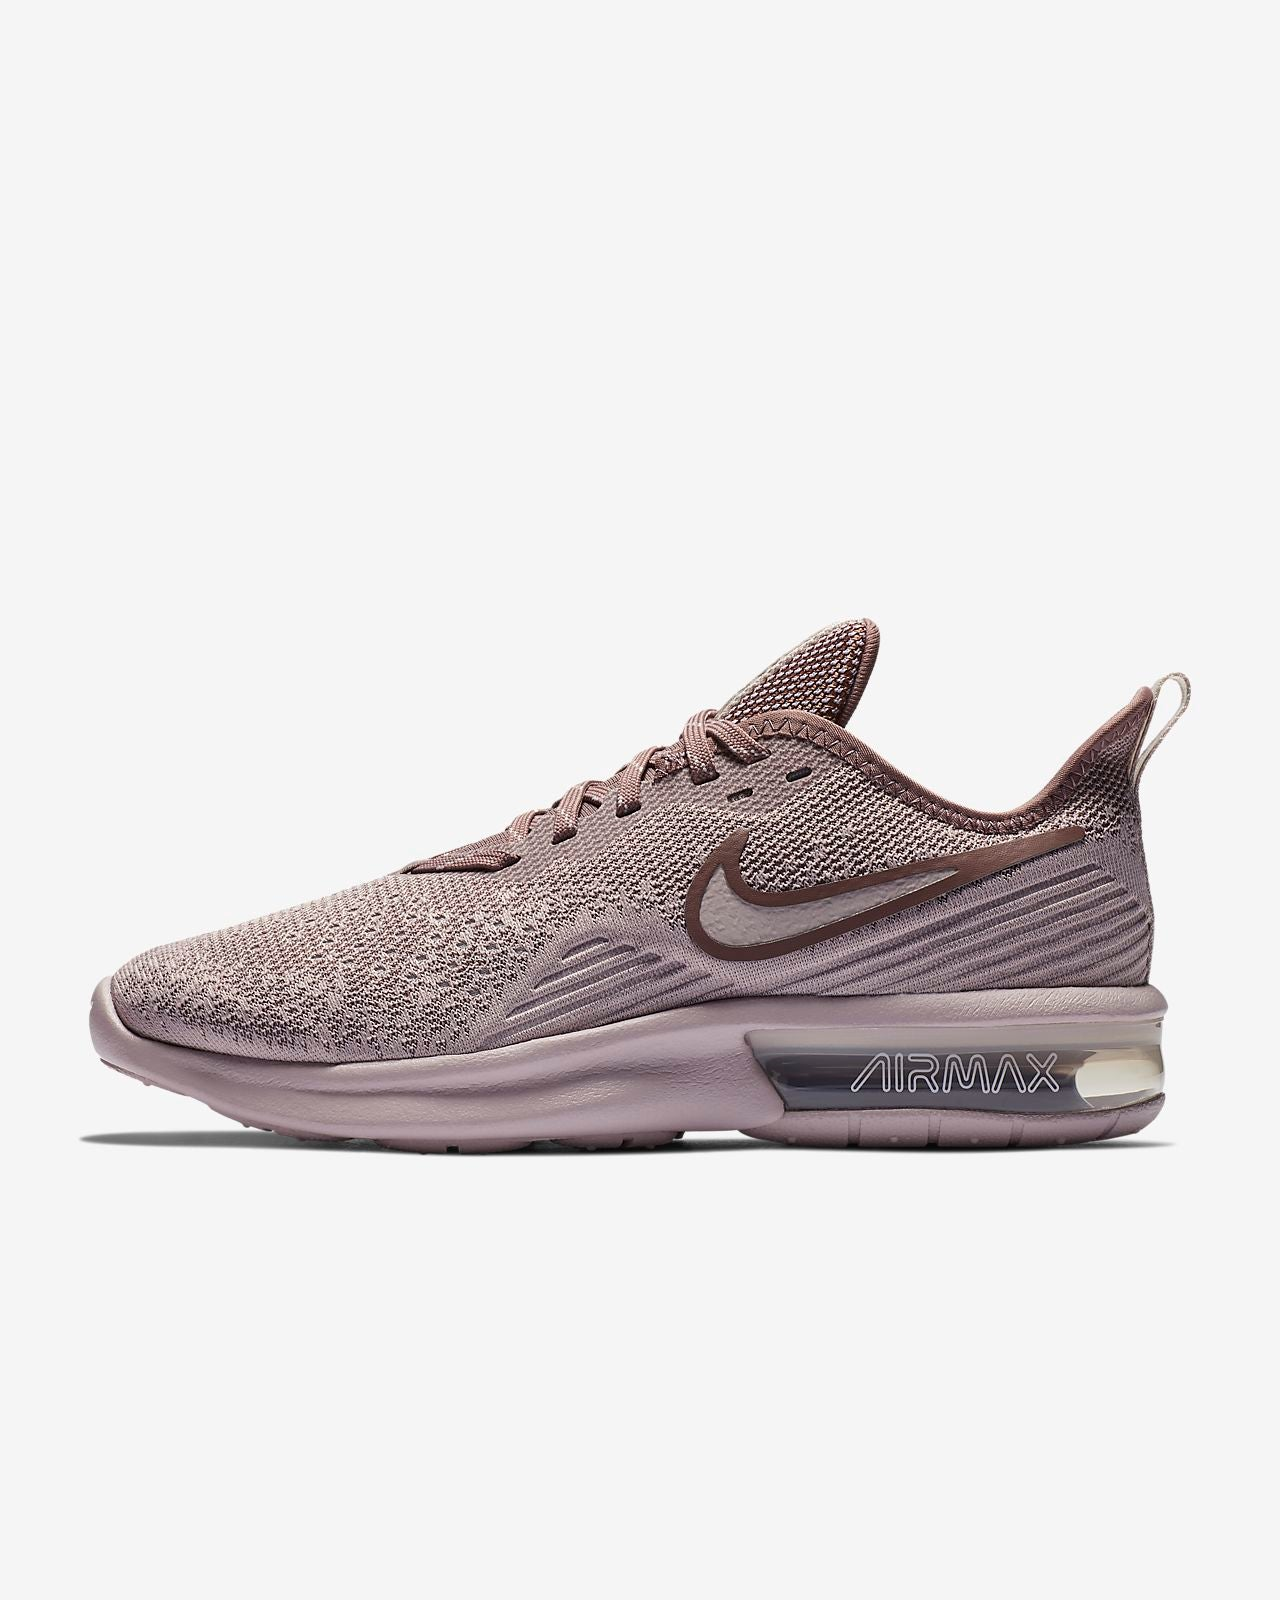 9ce9fbc5209 Buy NIKE Women Air Max Sequent 4 Running Shoes